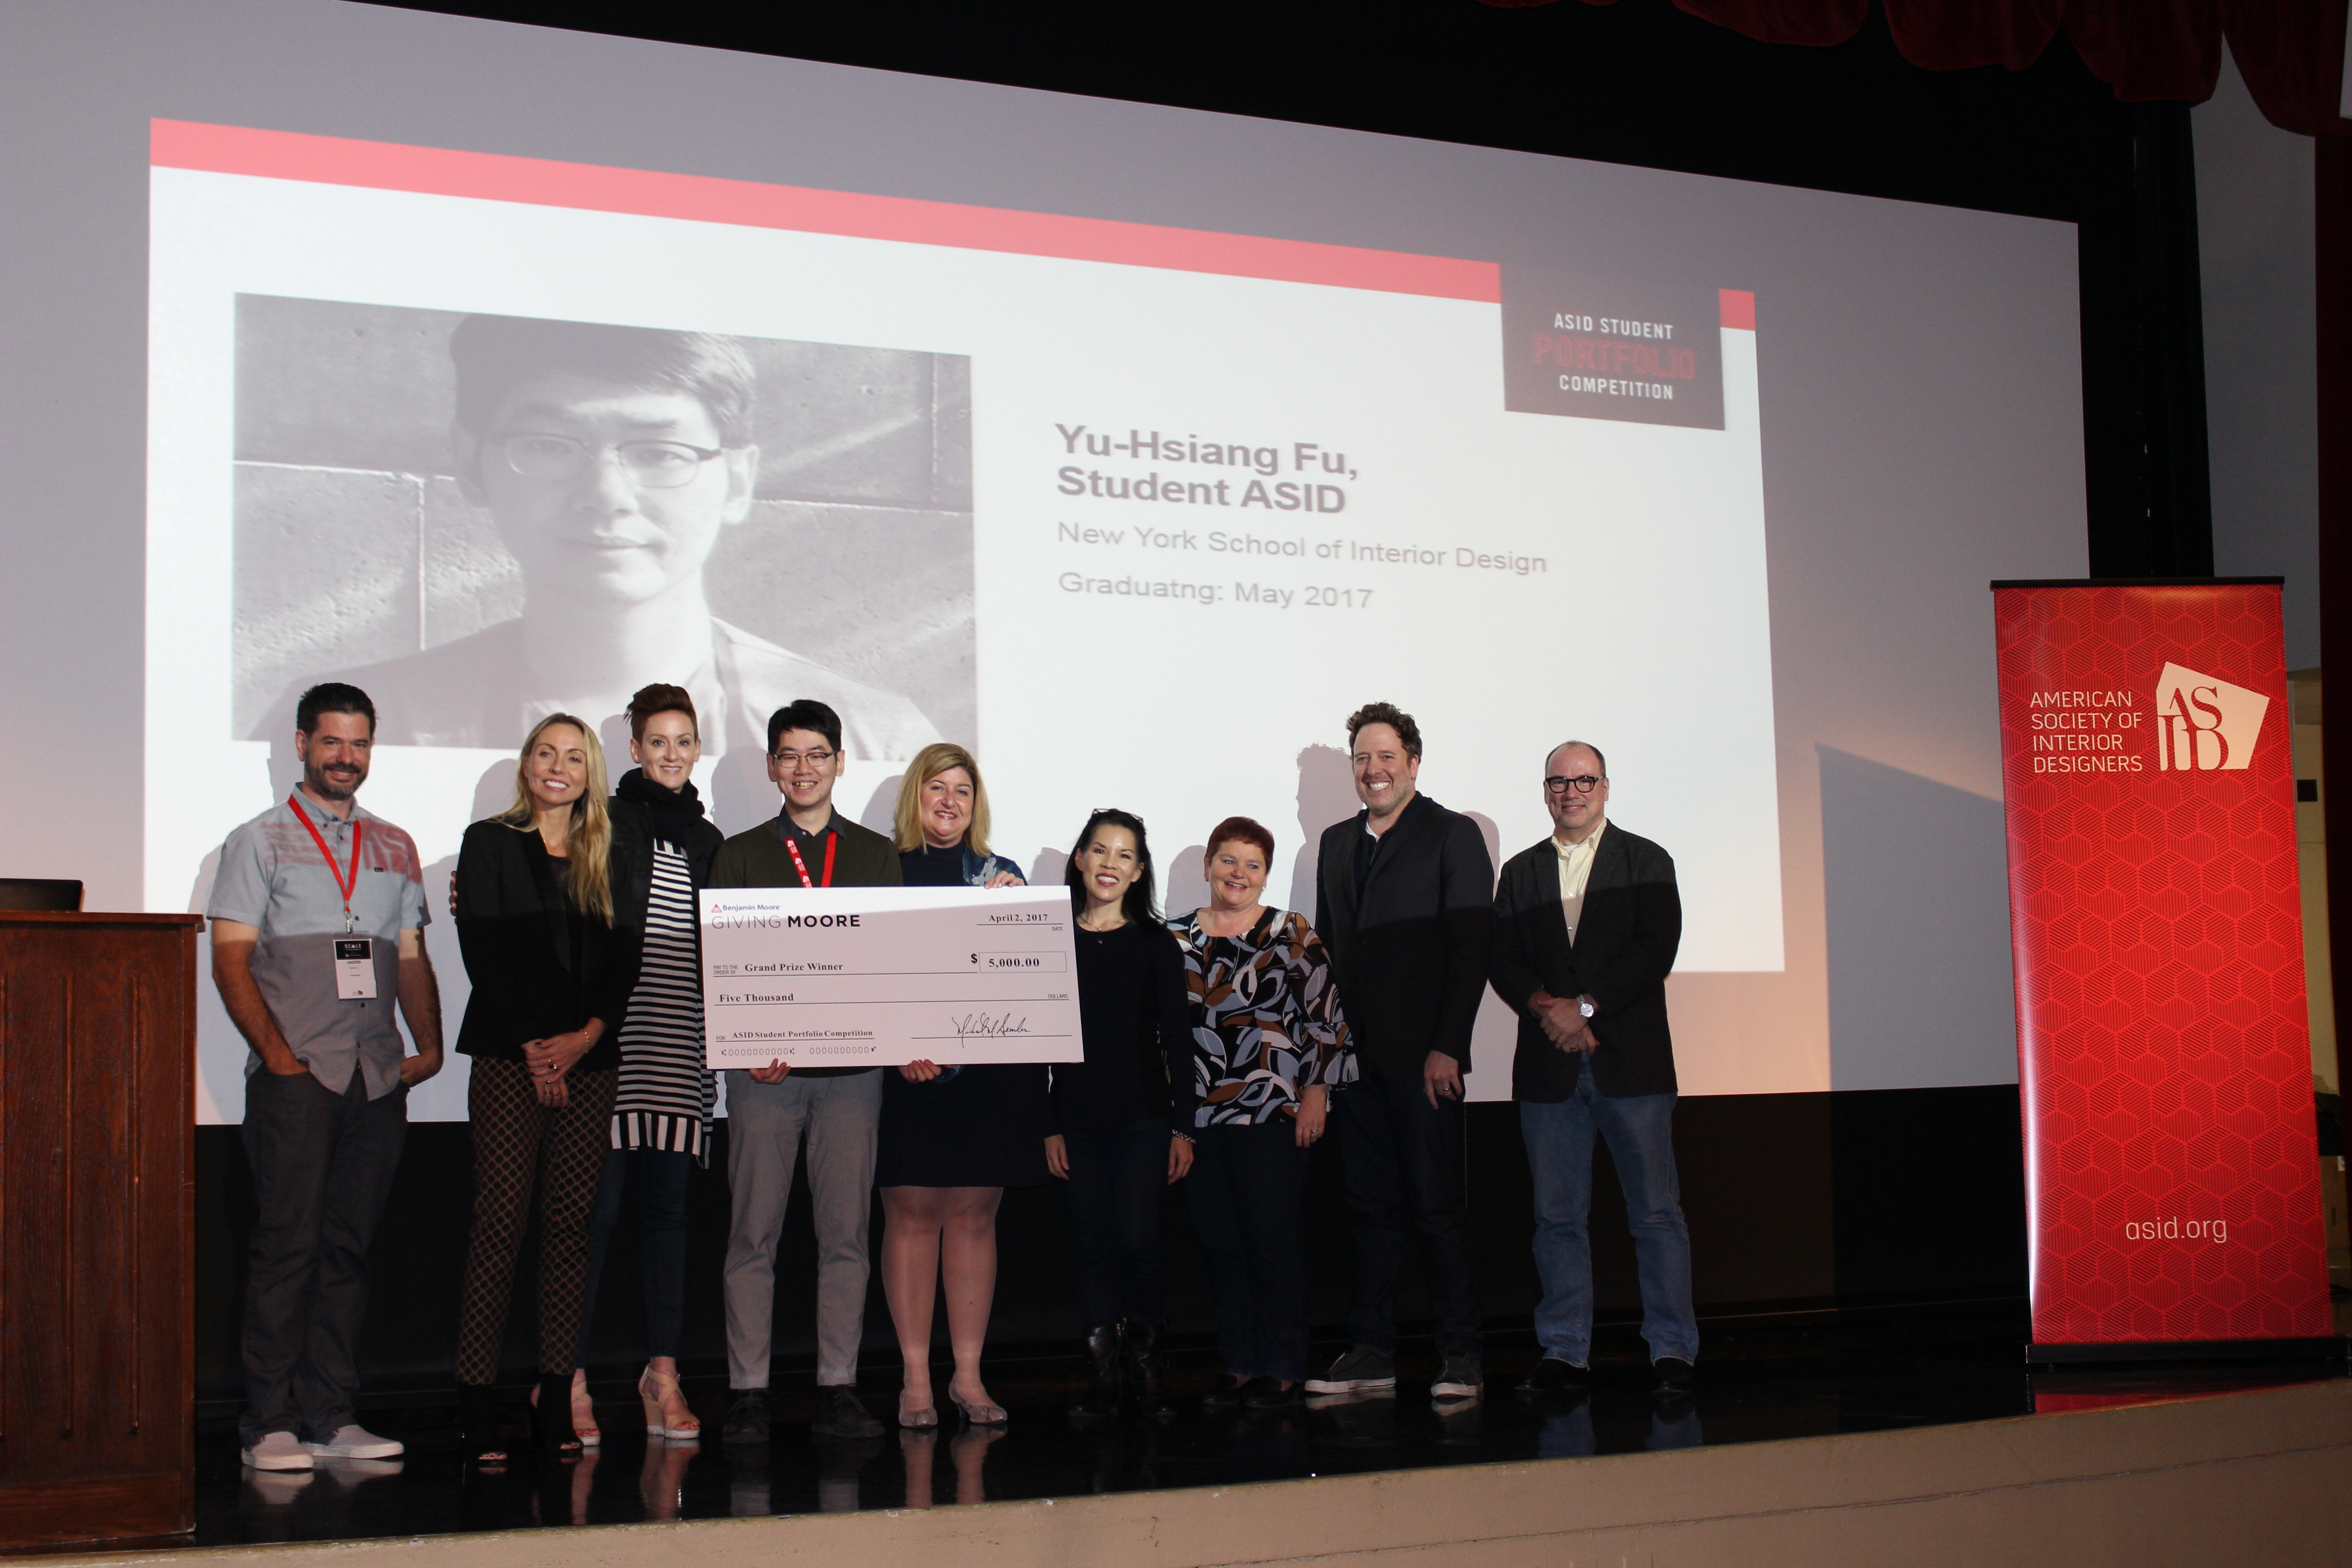 The American Society of Interior Designers Announces Student Award